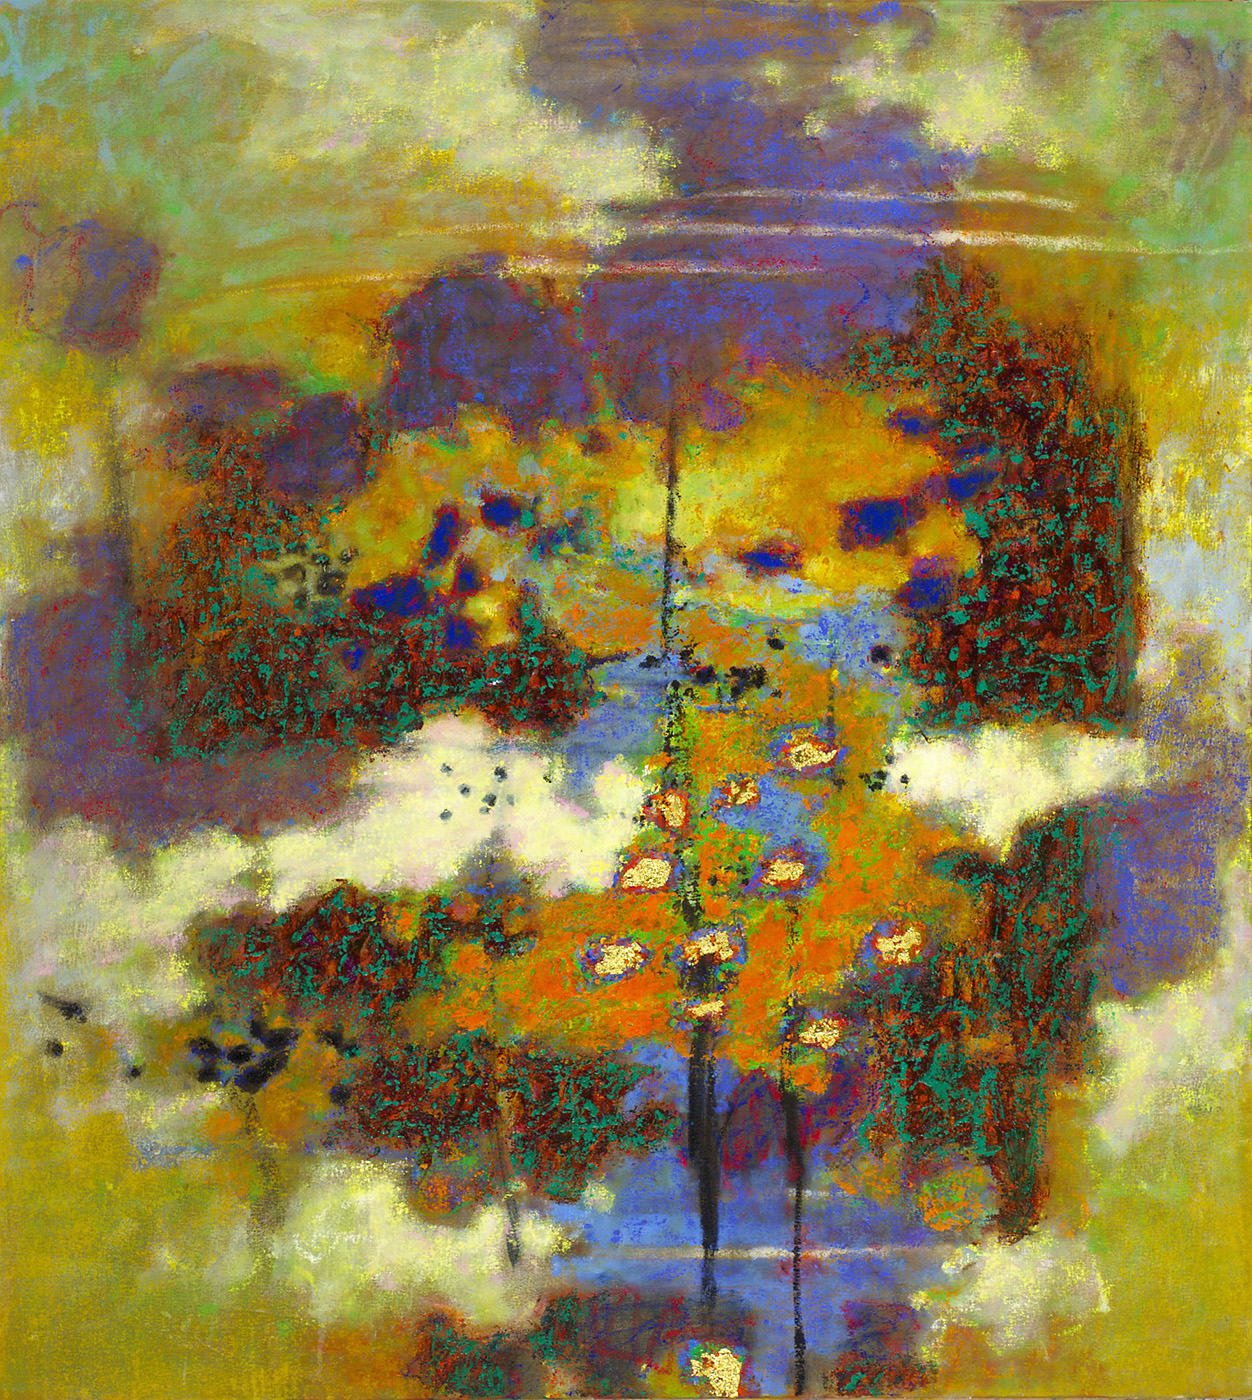 Encompassing Whole   | oil on canvas | 40 x 36"